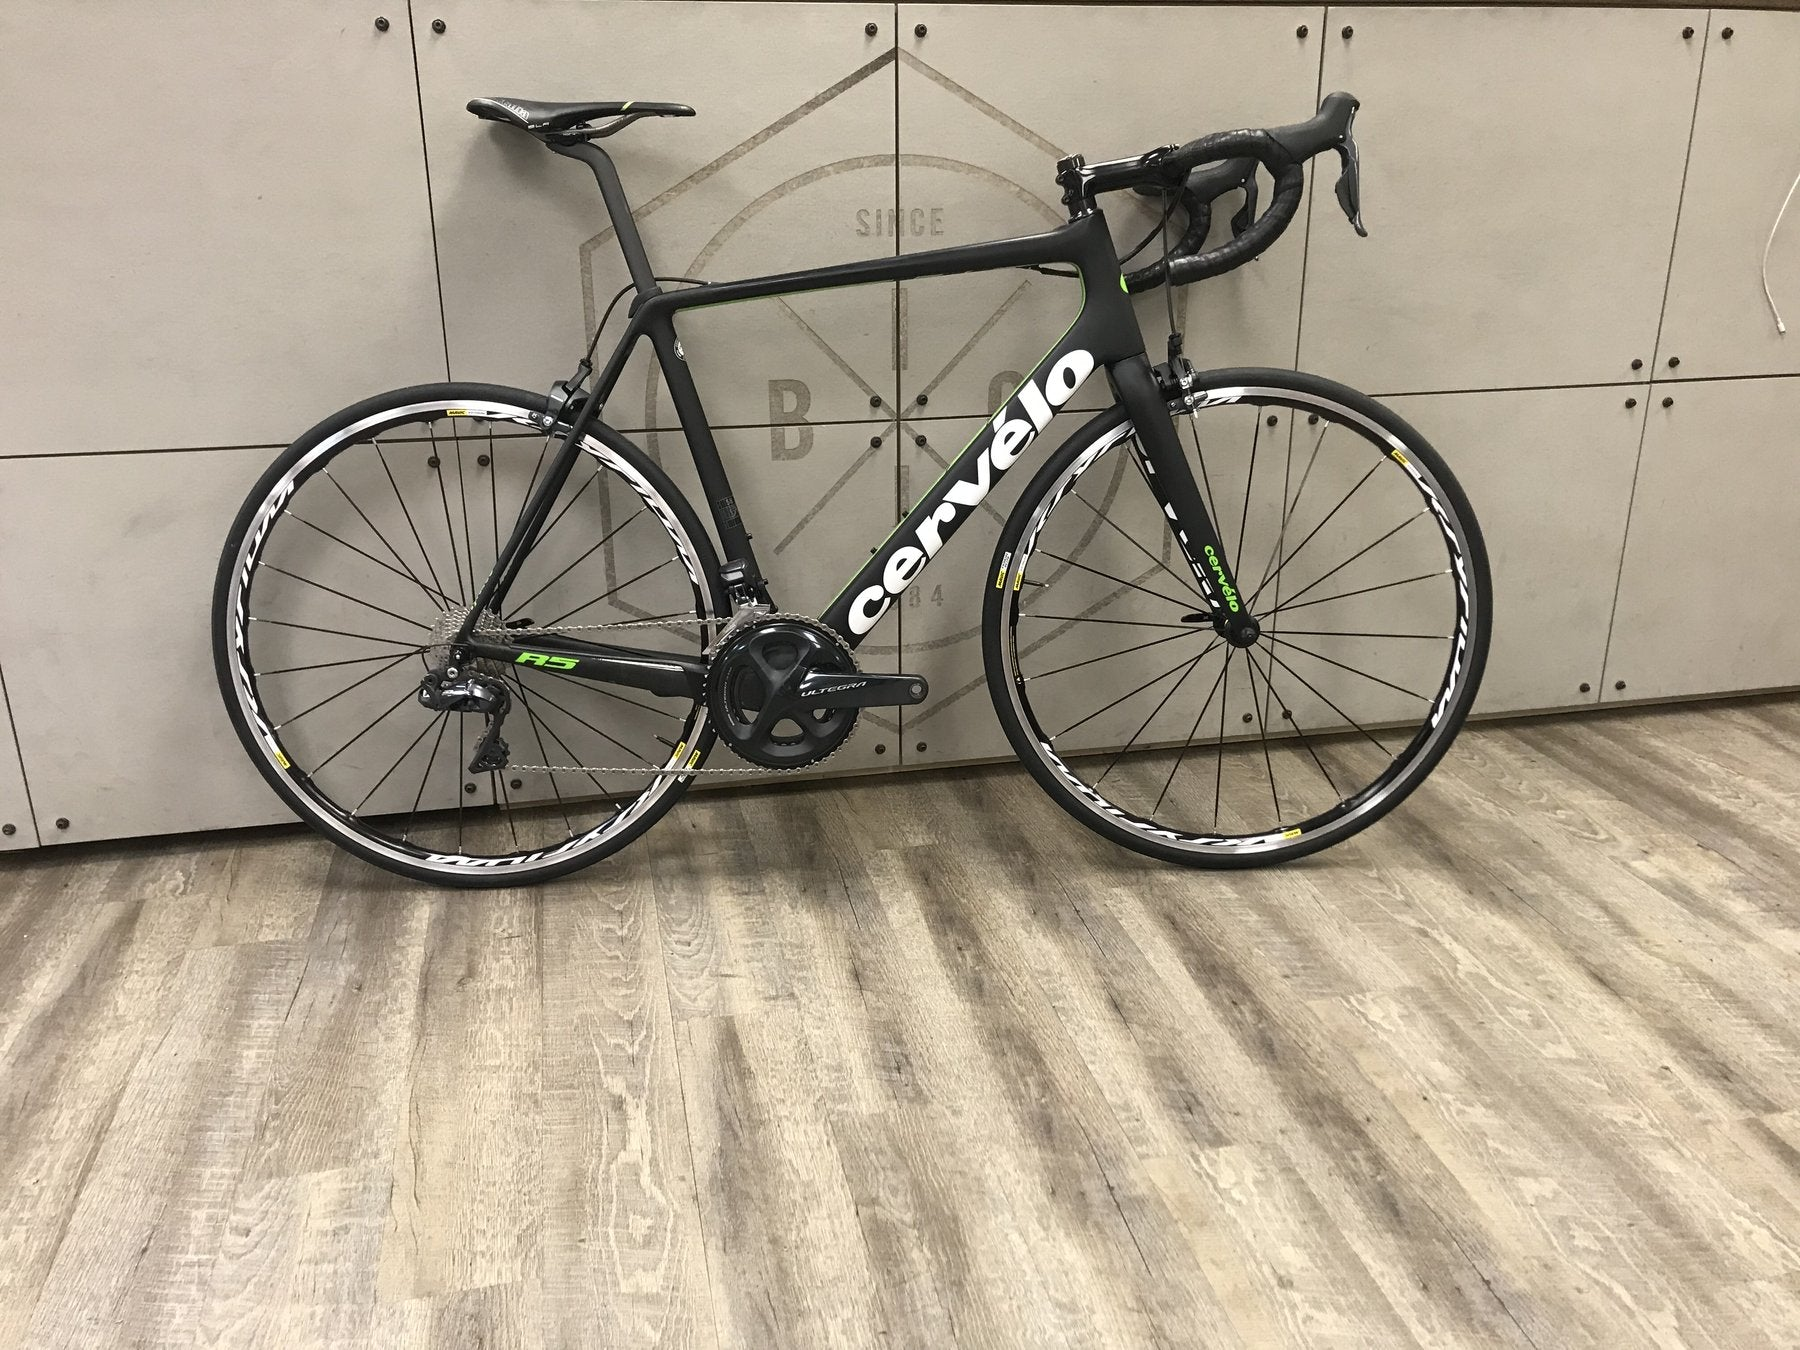 2018 Cervelo R5 Road Bike - Demo Bike - great sale